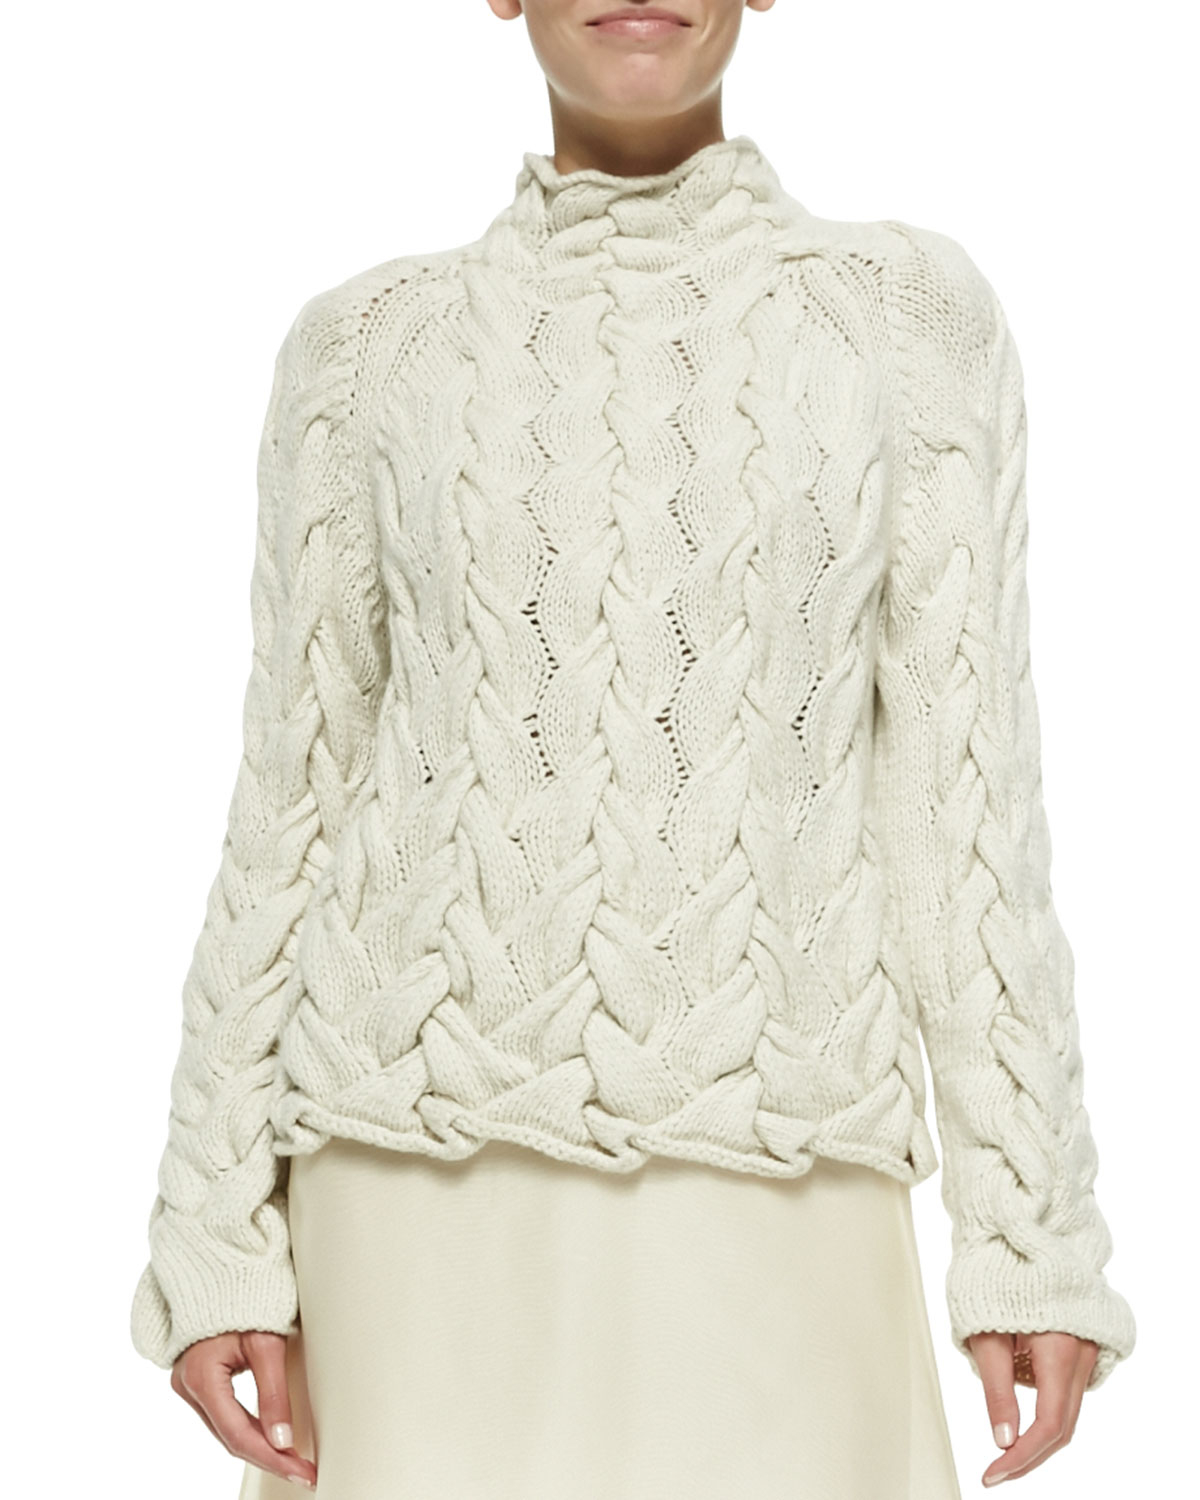 4a086db12 Lyst - The Row Chunky Cable-Knit Sweater in Natural